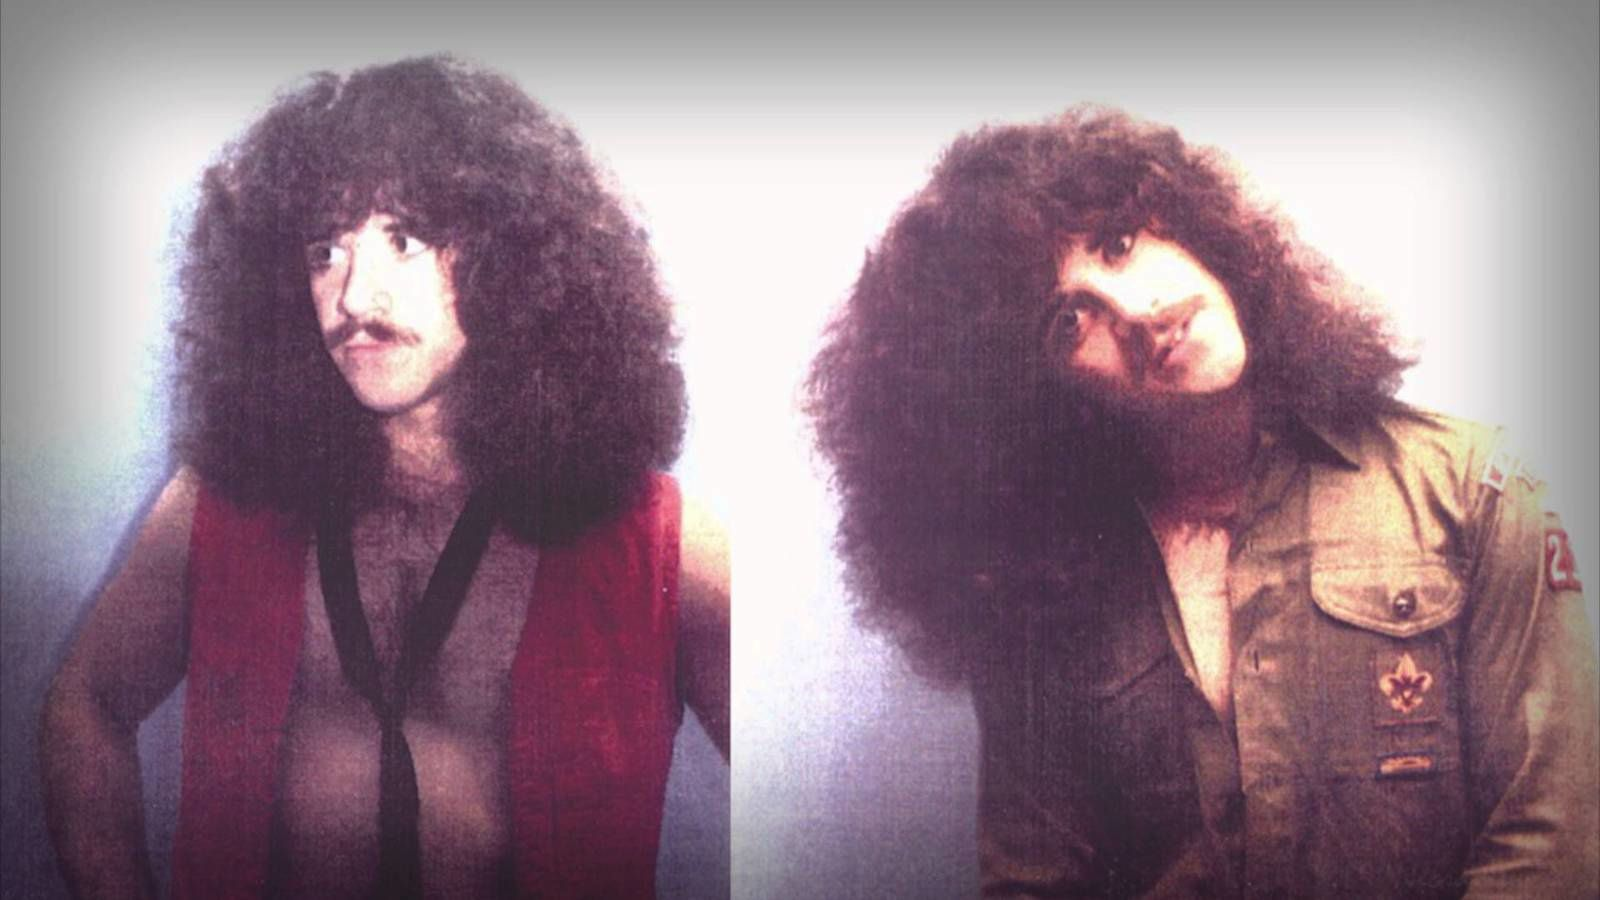 Eric Carr, KISS (16 years old)